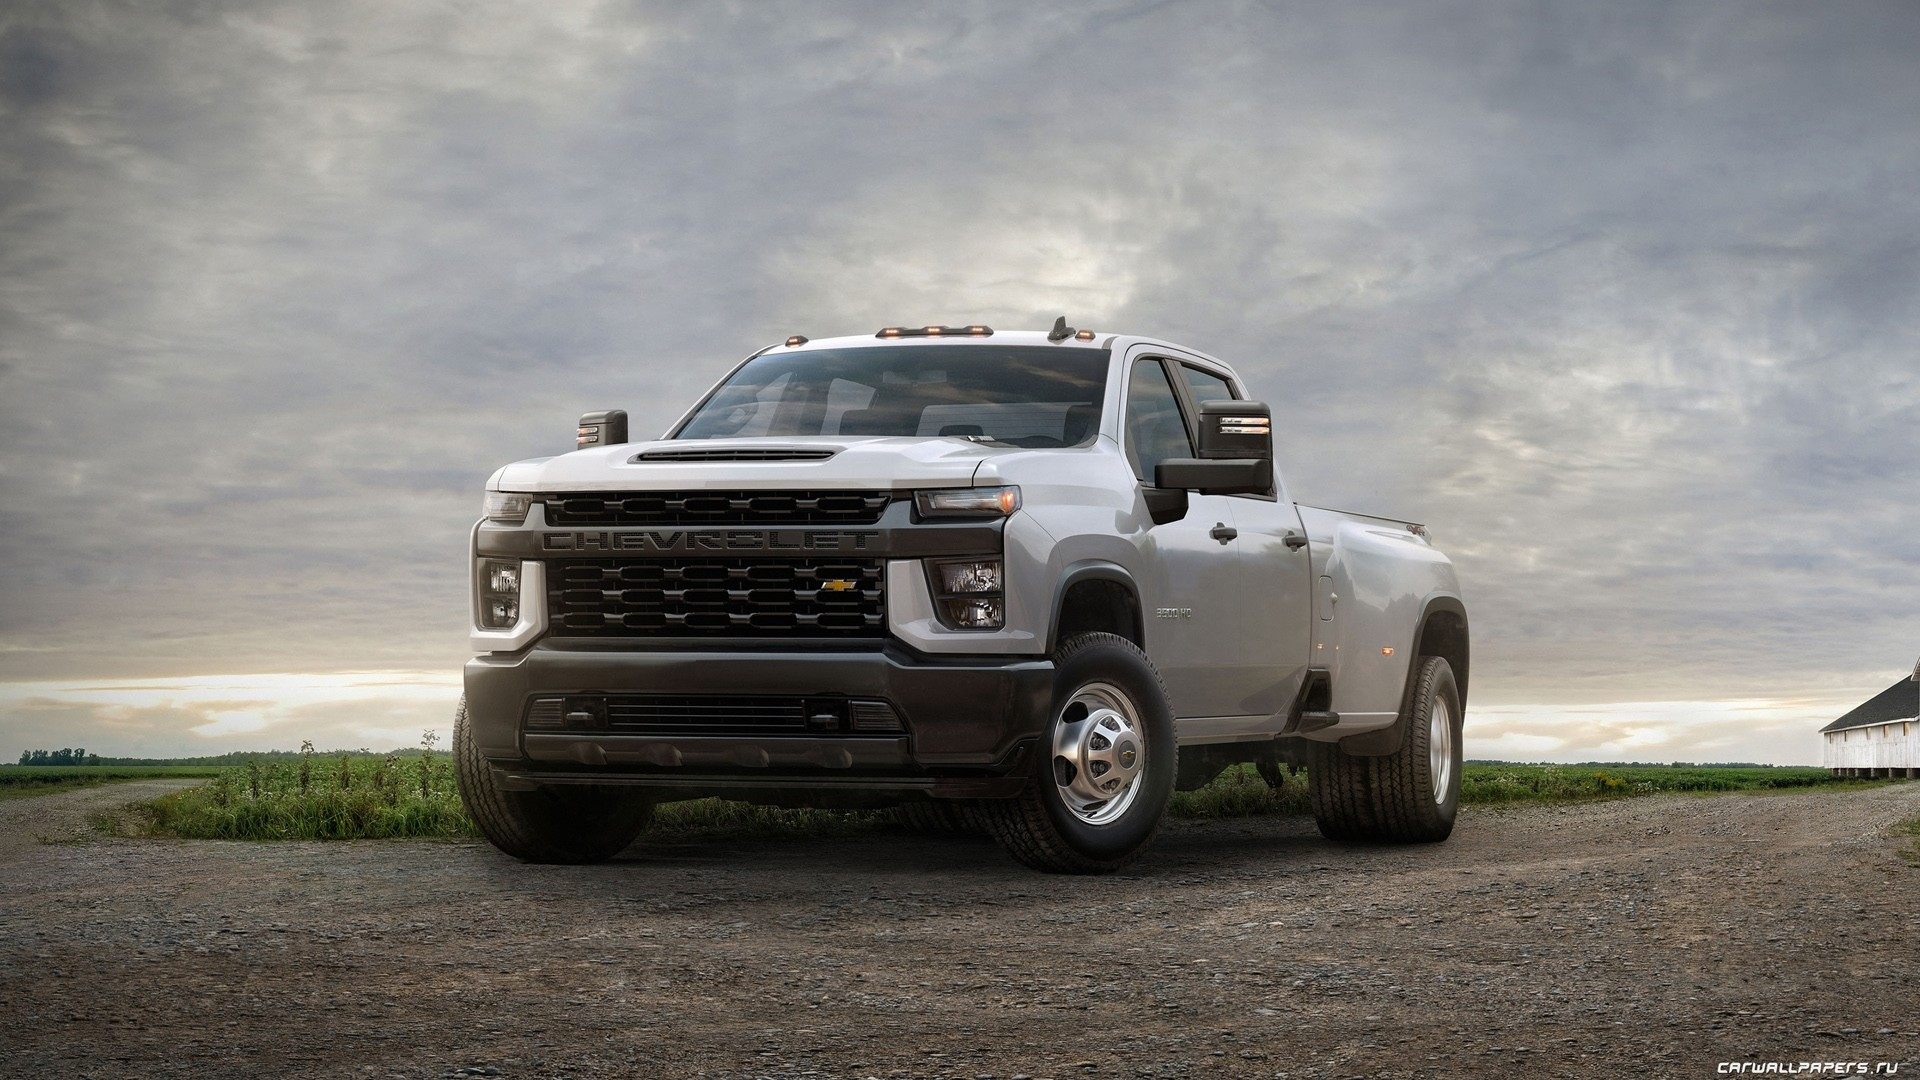 Silverado hd wallpaper for laptop